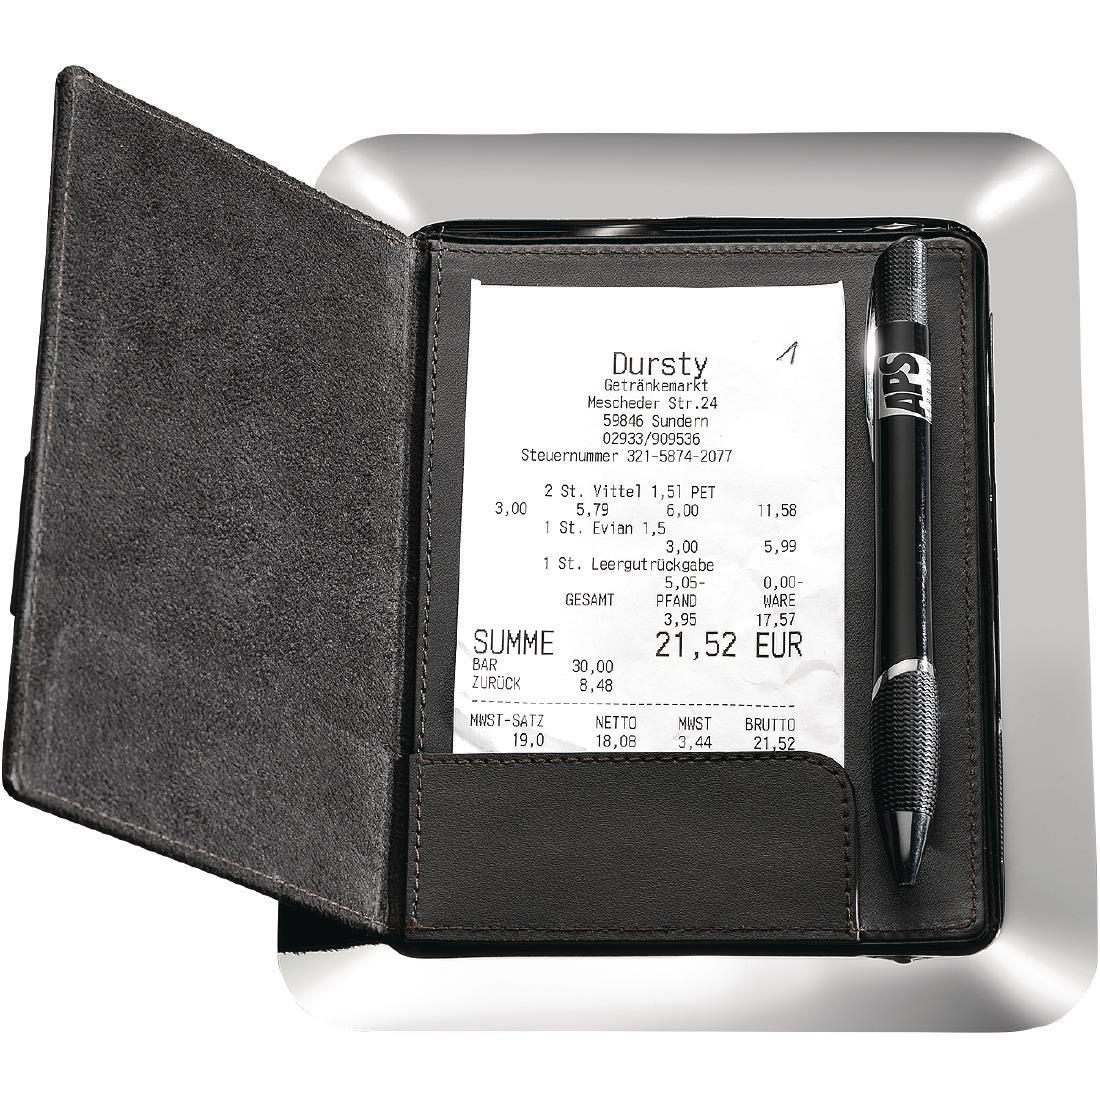 APS Stainless Steel and Leather Bill Presenter - Each - GH406